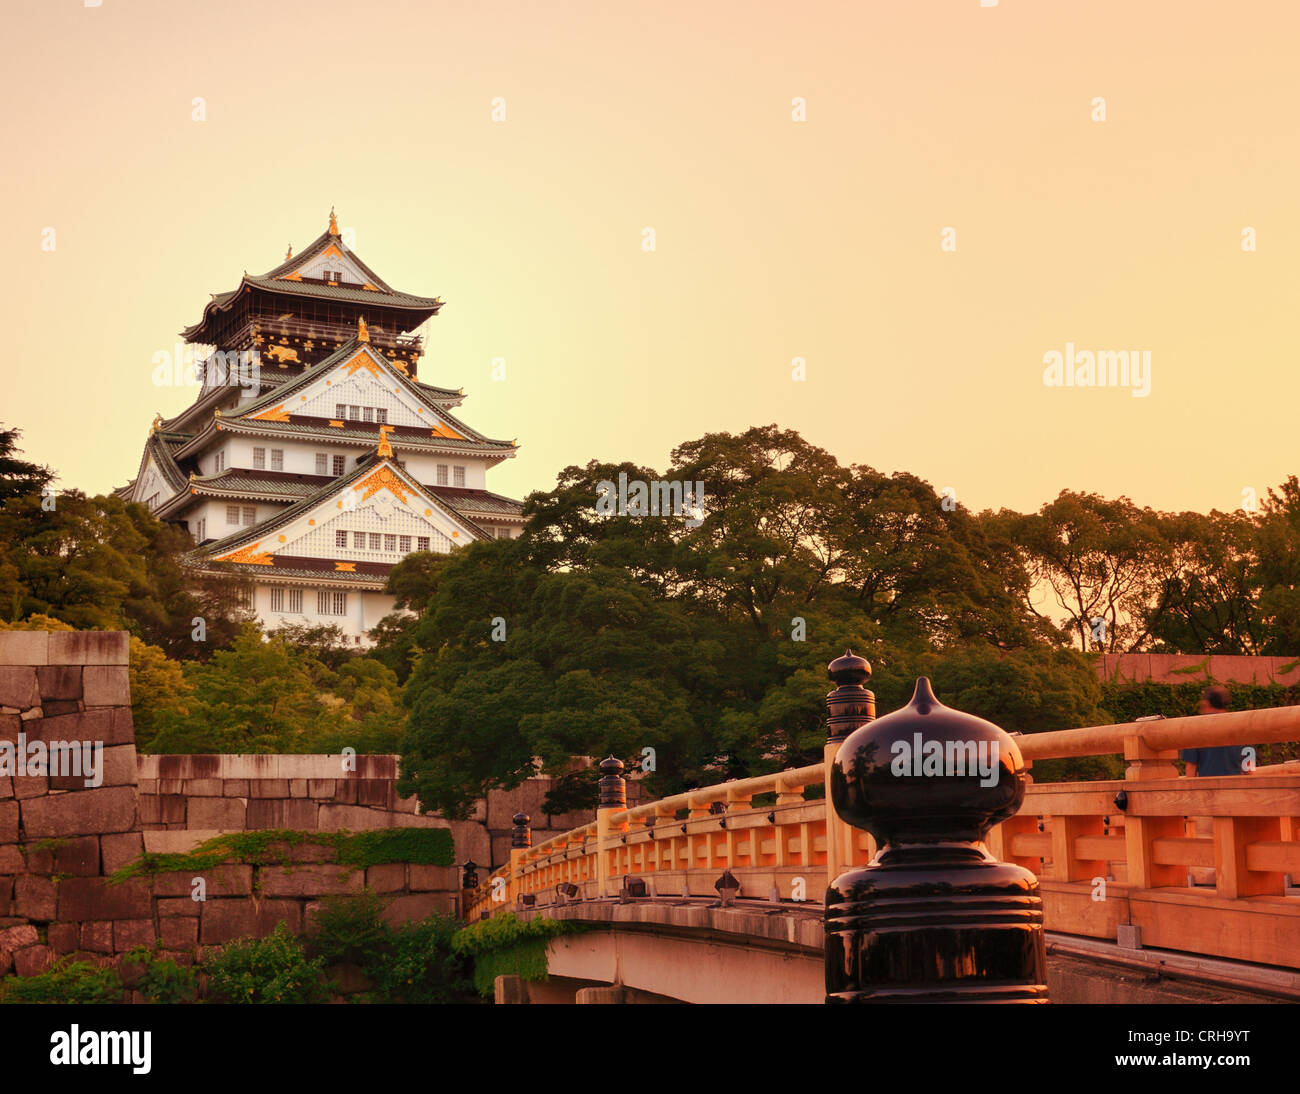 Le Château d'Osaka à Osaka, Japon. Photo Stock